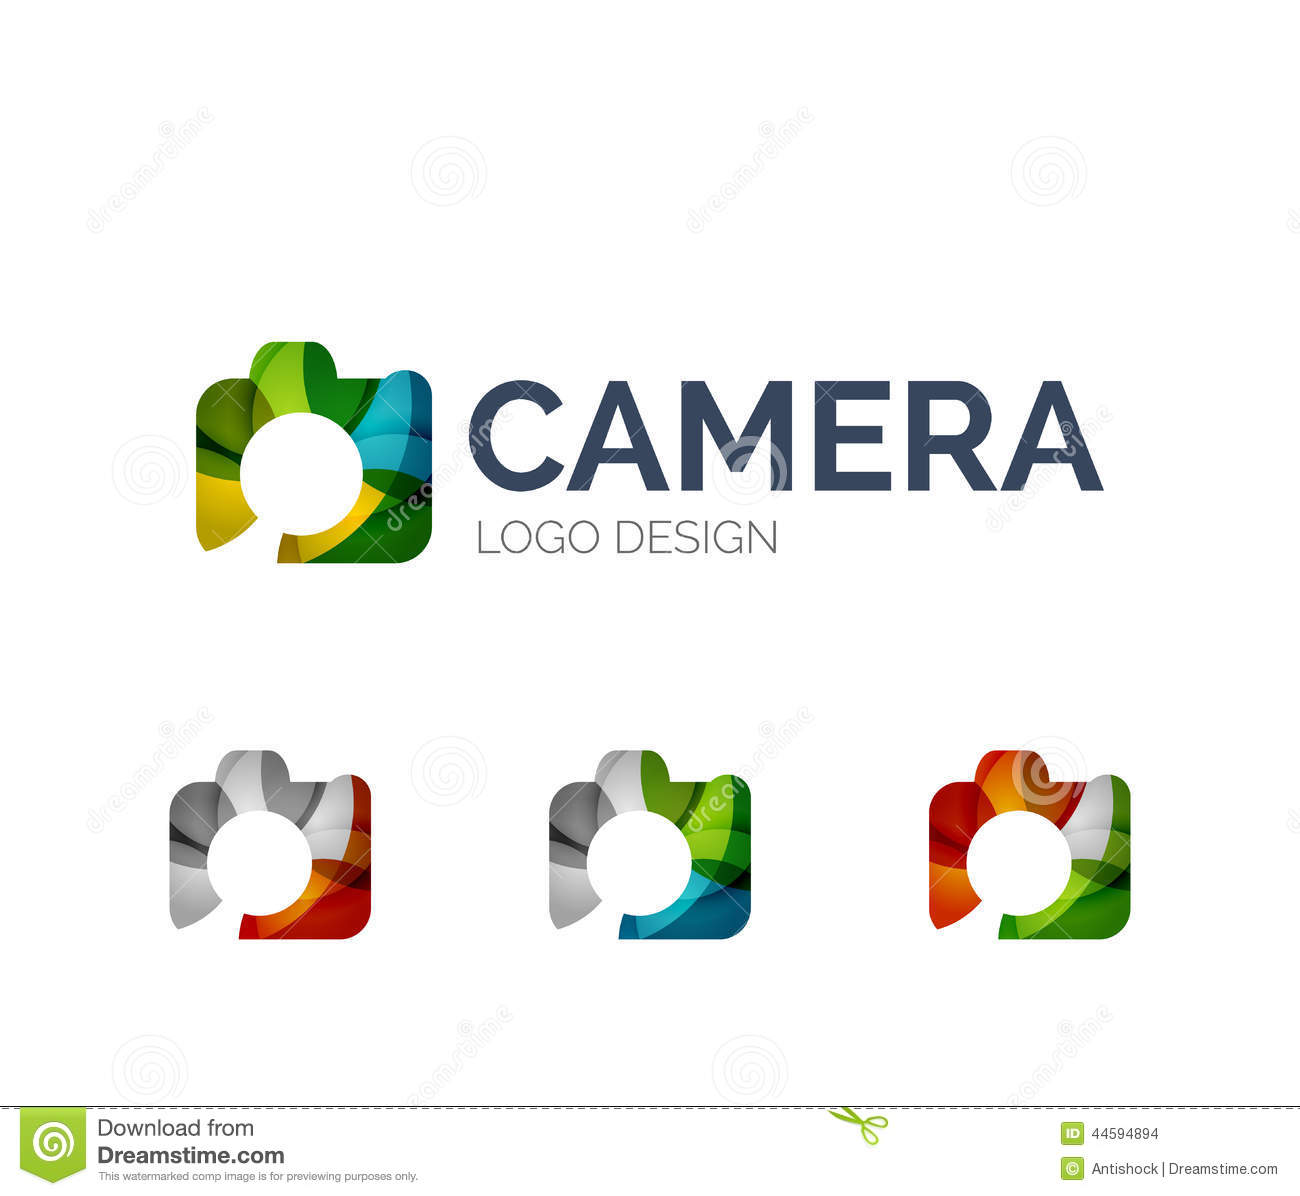 Abstract camera logo design made of color pieces - various geometric ...